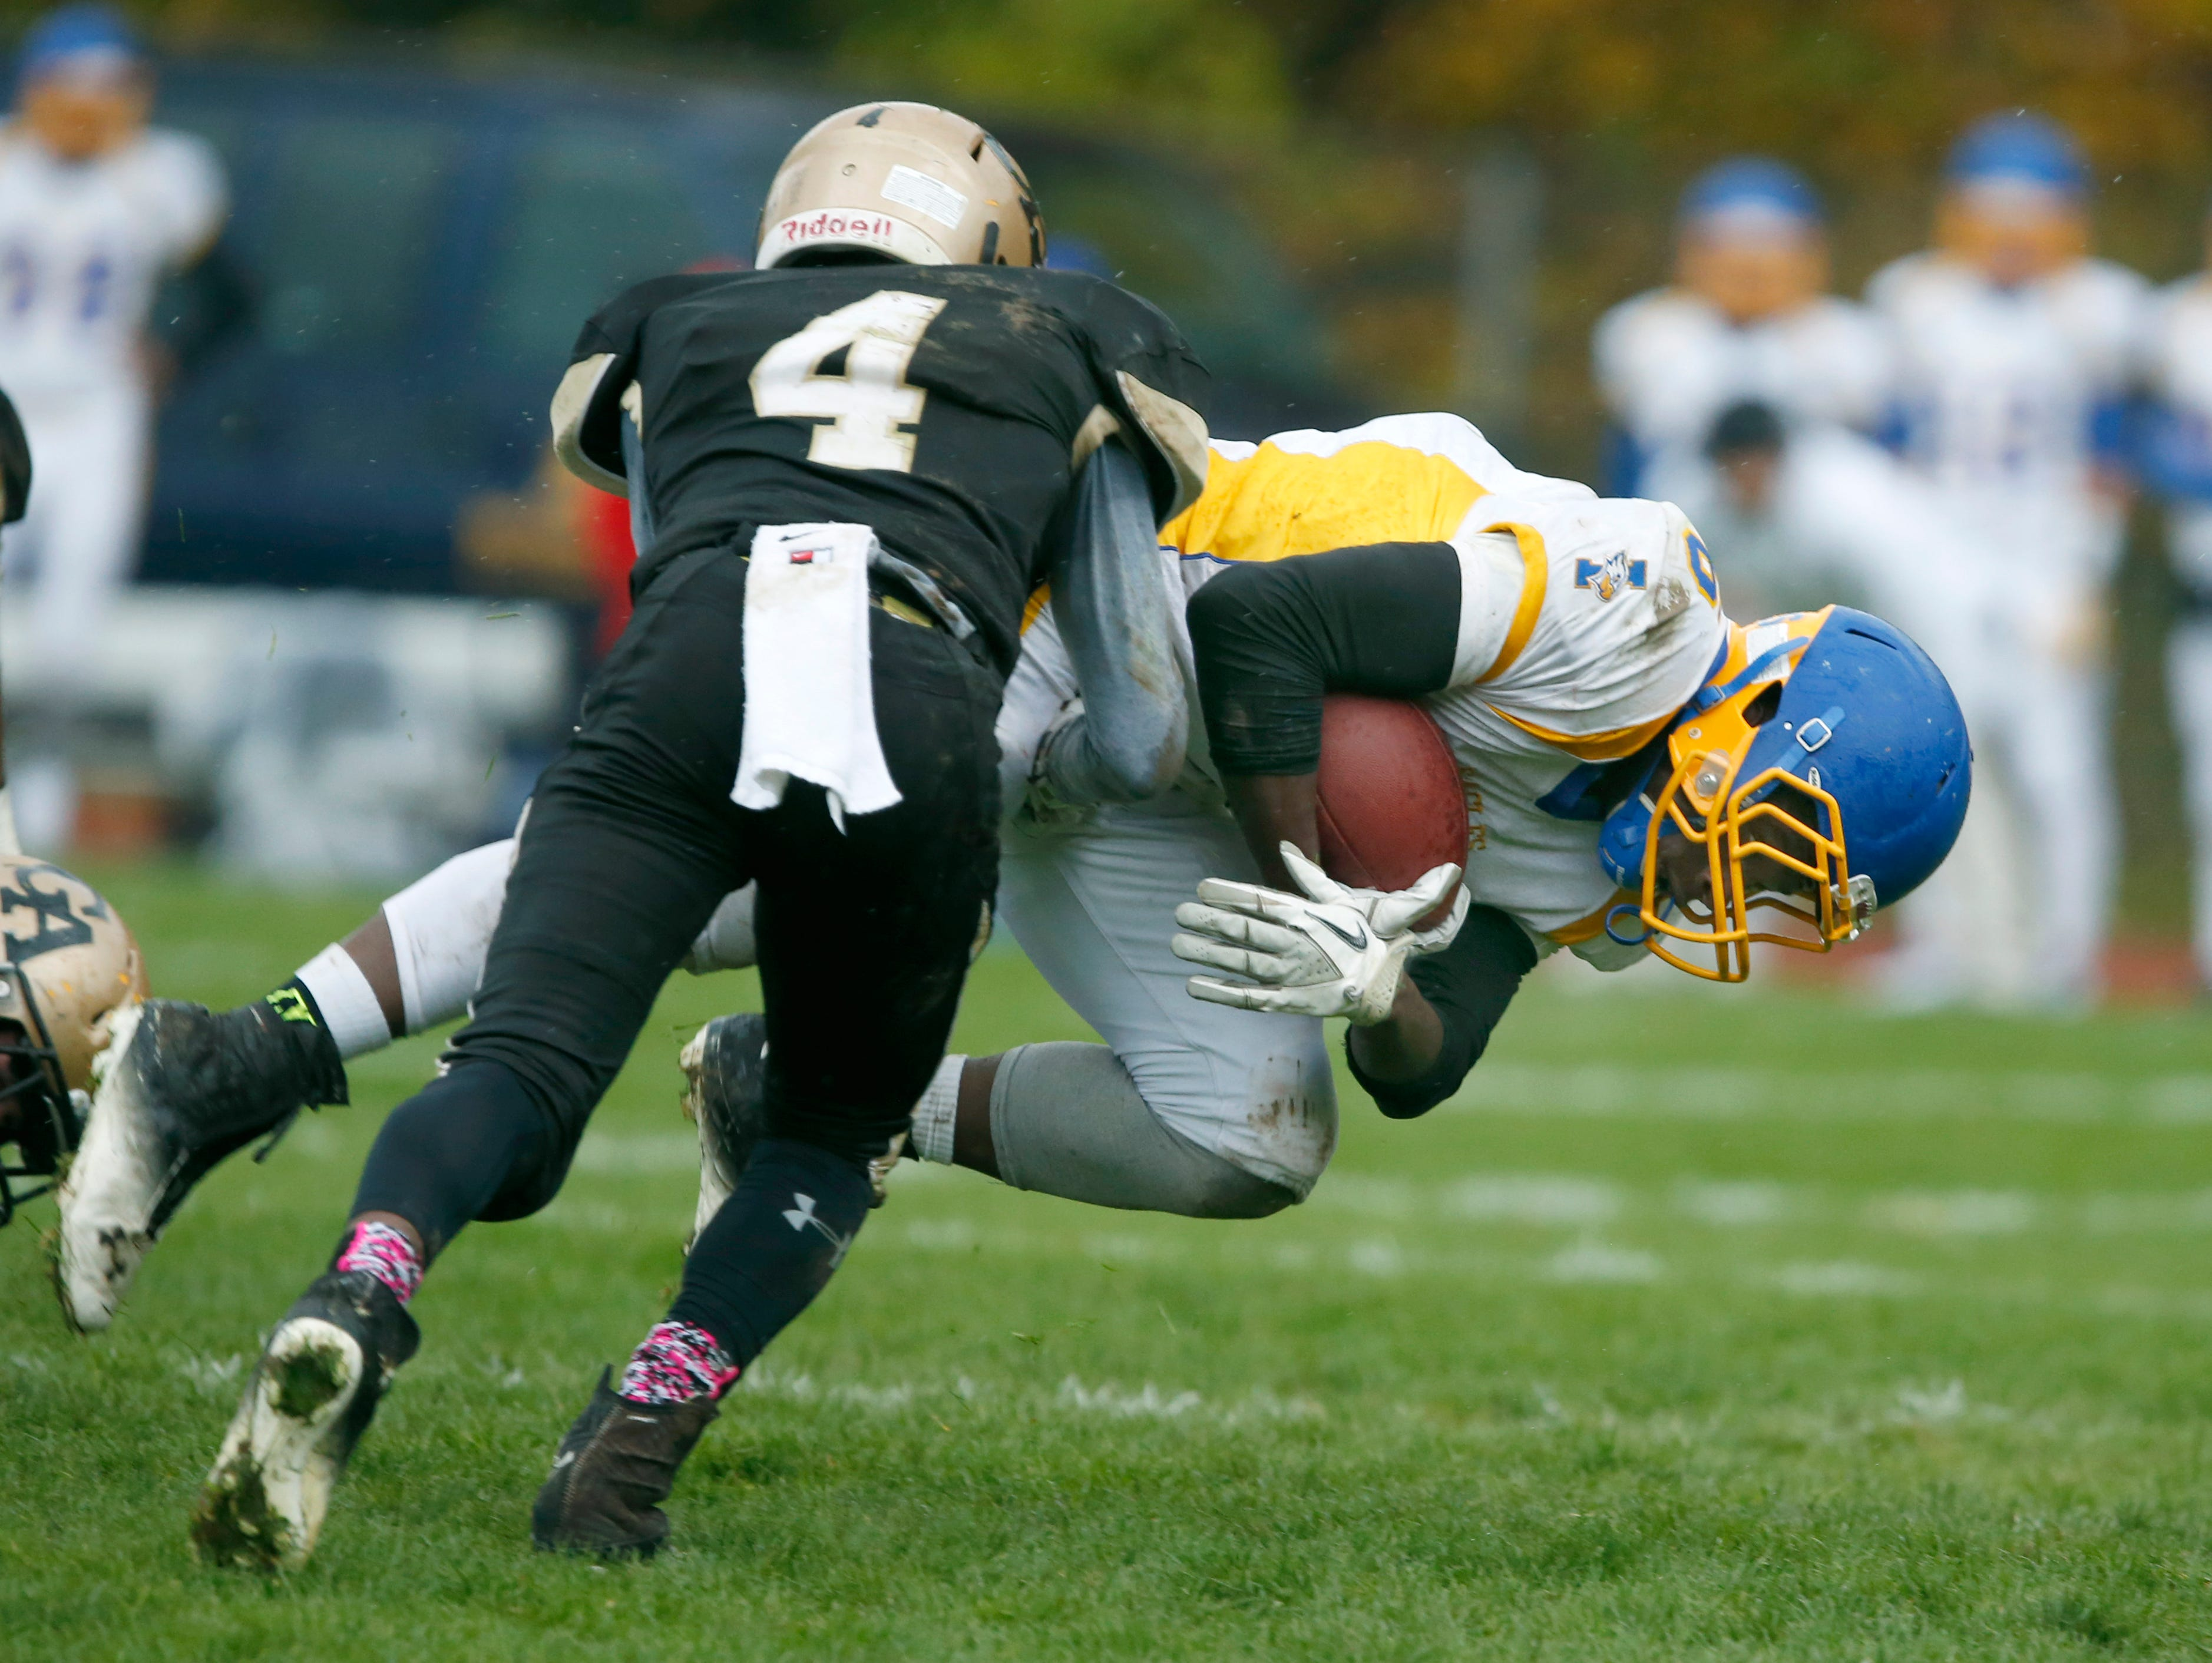 Irondequoit's Shawn Jones is tackled by Greece Athena's Kenny Speed in the second quarter at Greece Athena High School.